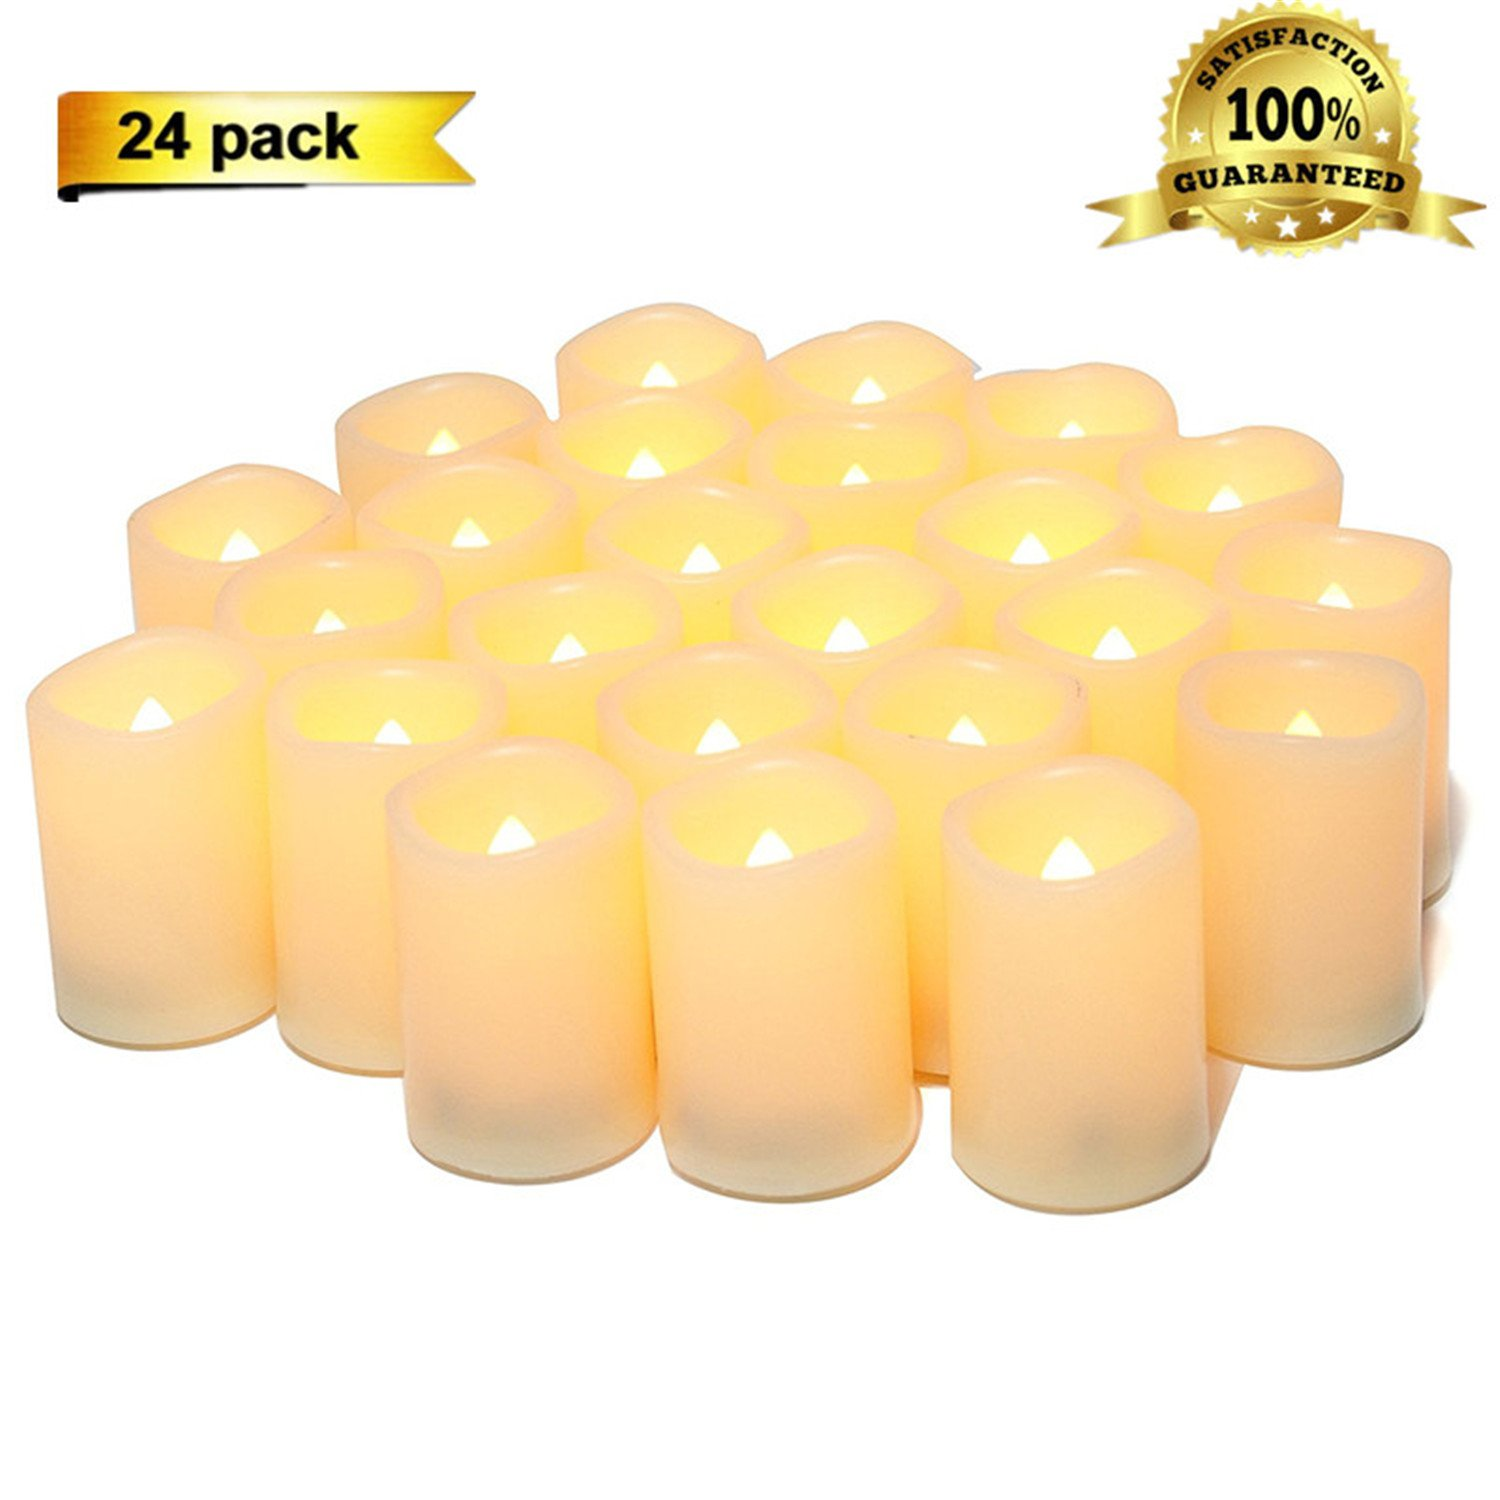 Sweethug Flameless Candles LED Flickering Votive Candles Battery Operated Unscented Candles, 120+ Hours, Set of 24, Perfect for Birthday Wedding Party,Home Decor, Festival Decorations